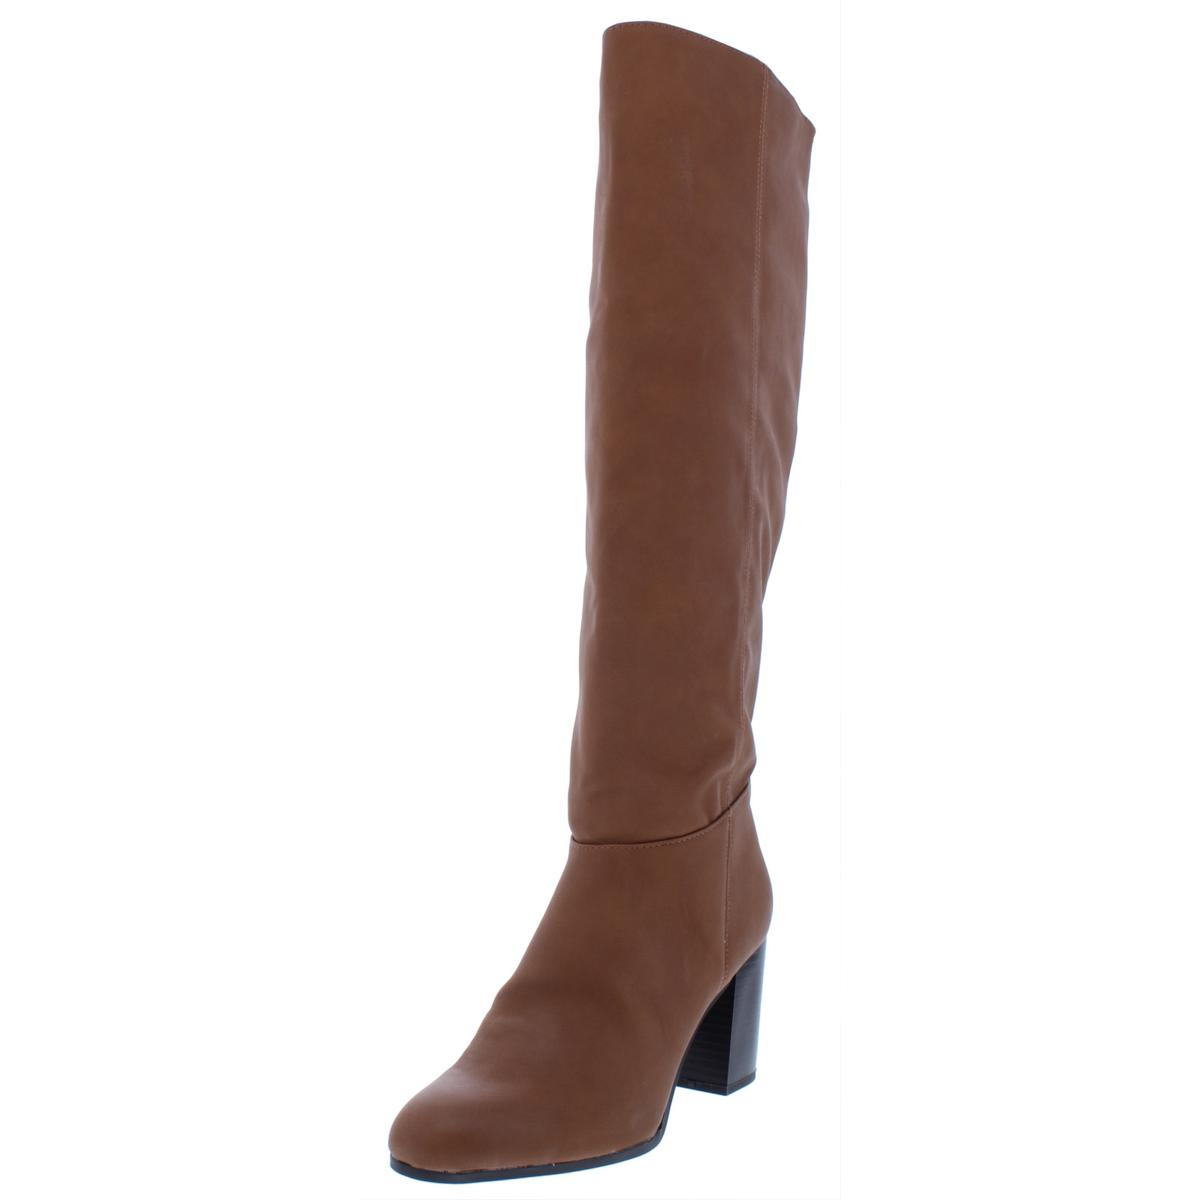 95e1cdf8a47 Circus by Sam Edelman Womens Sibley Brown Riding Boots 10 Medium (B ...